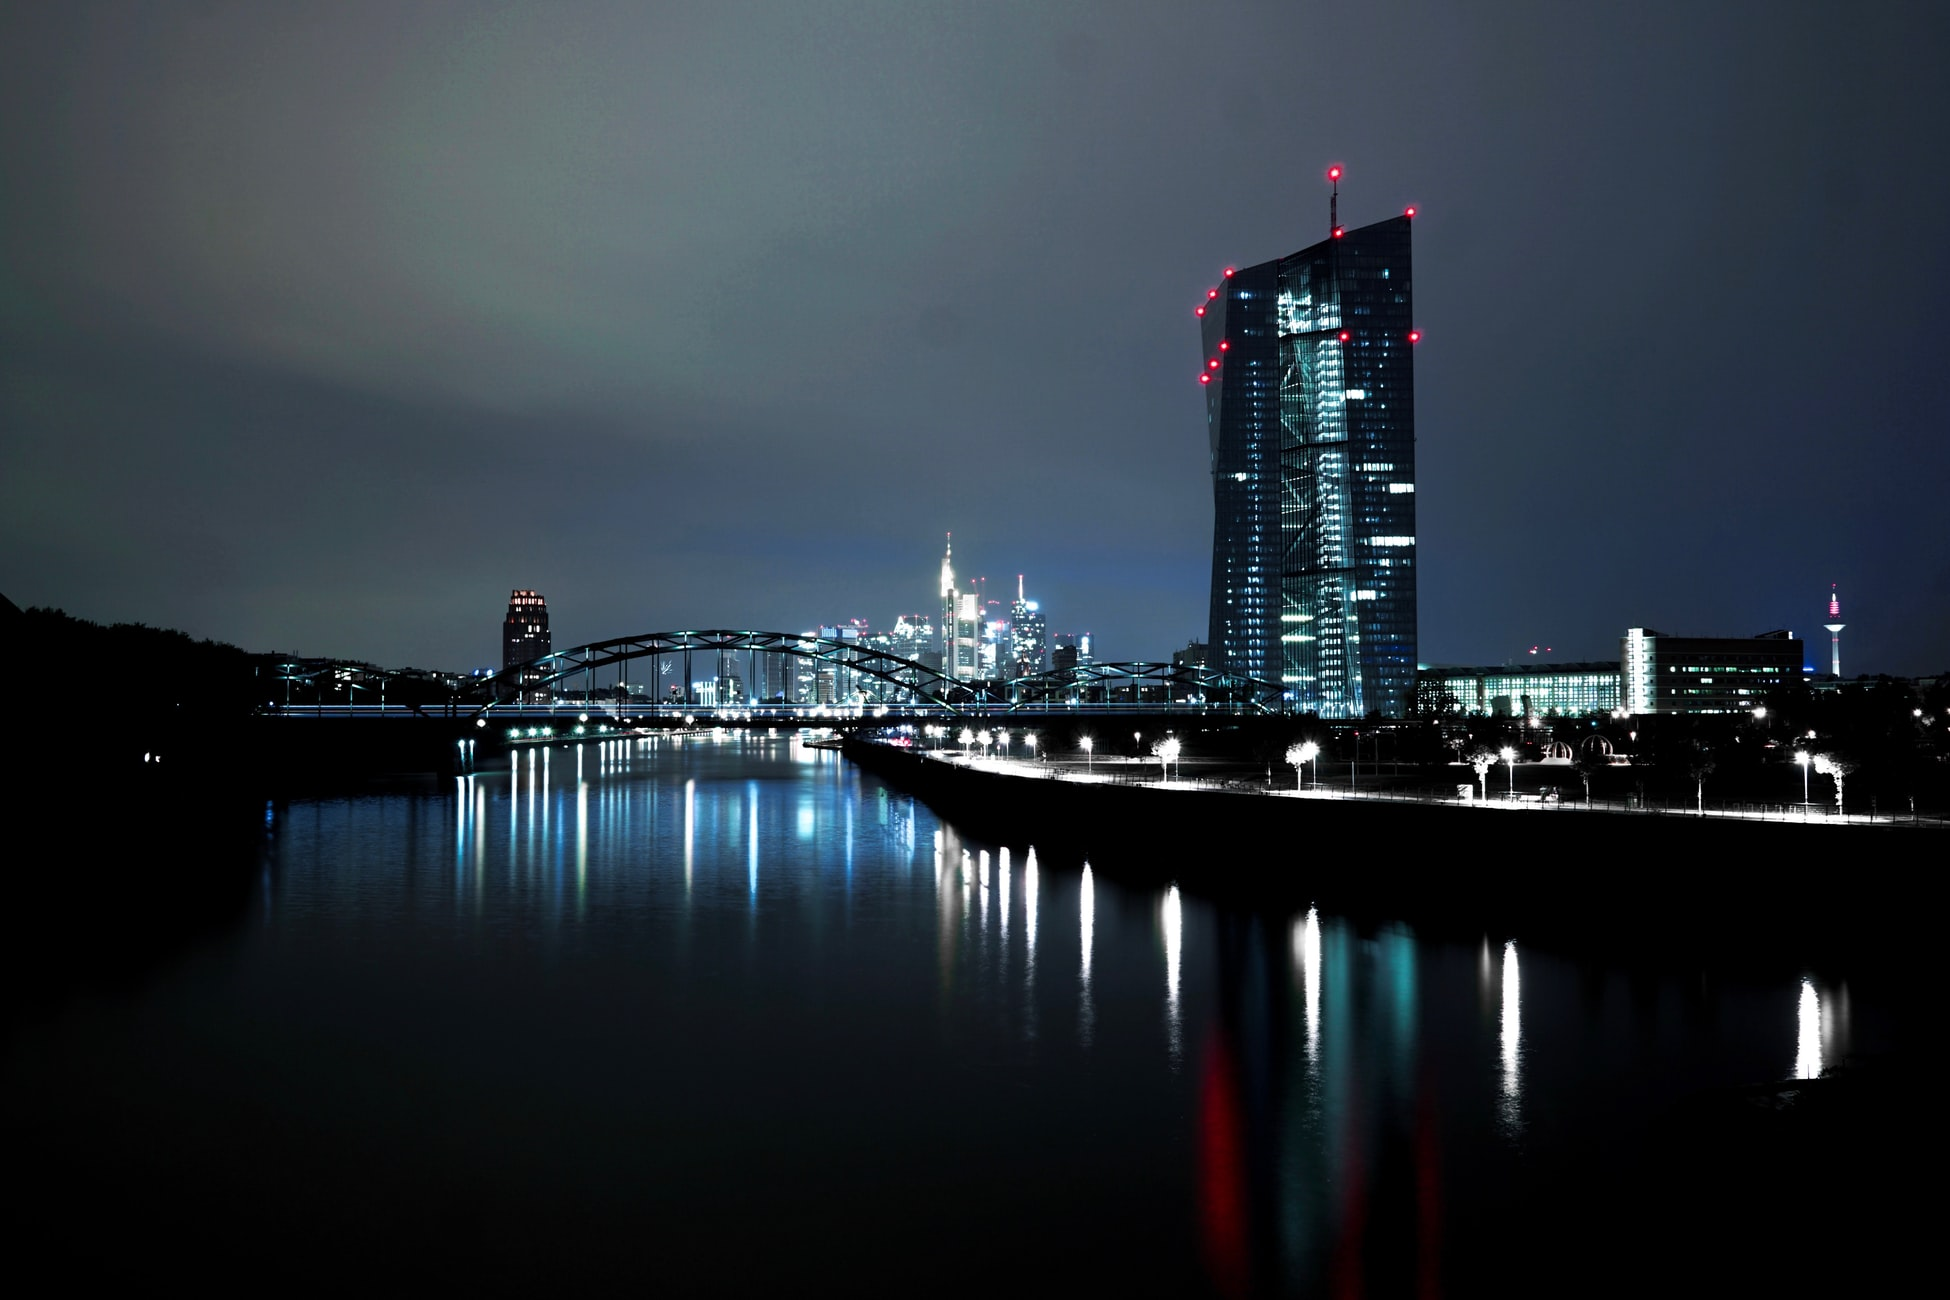 European Central Bank Photo by Finn Protzmann on Unsplash